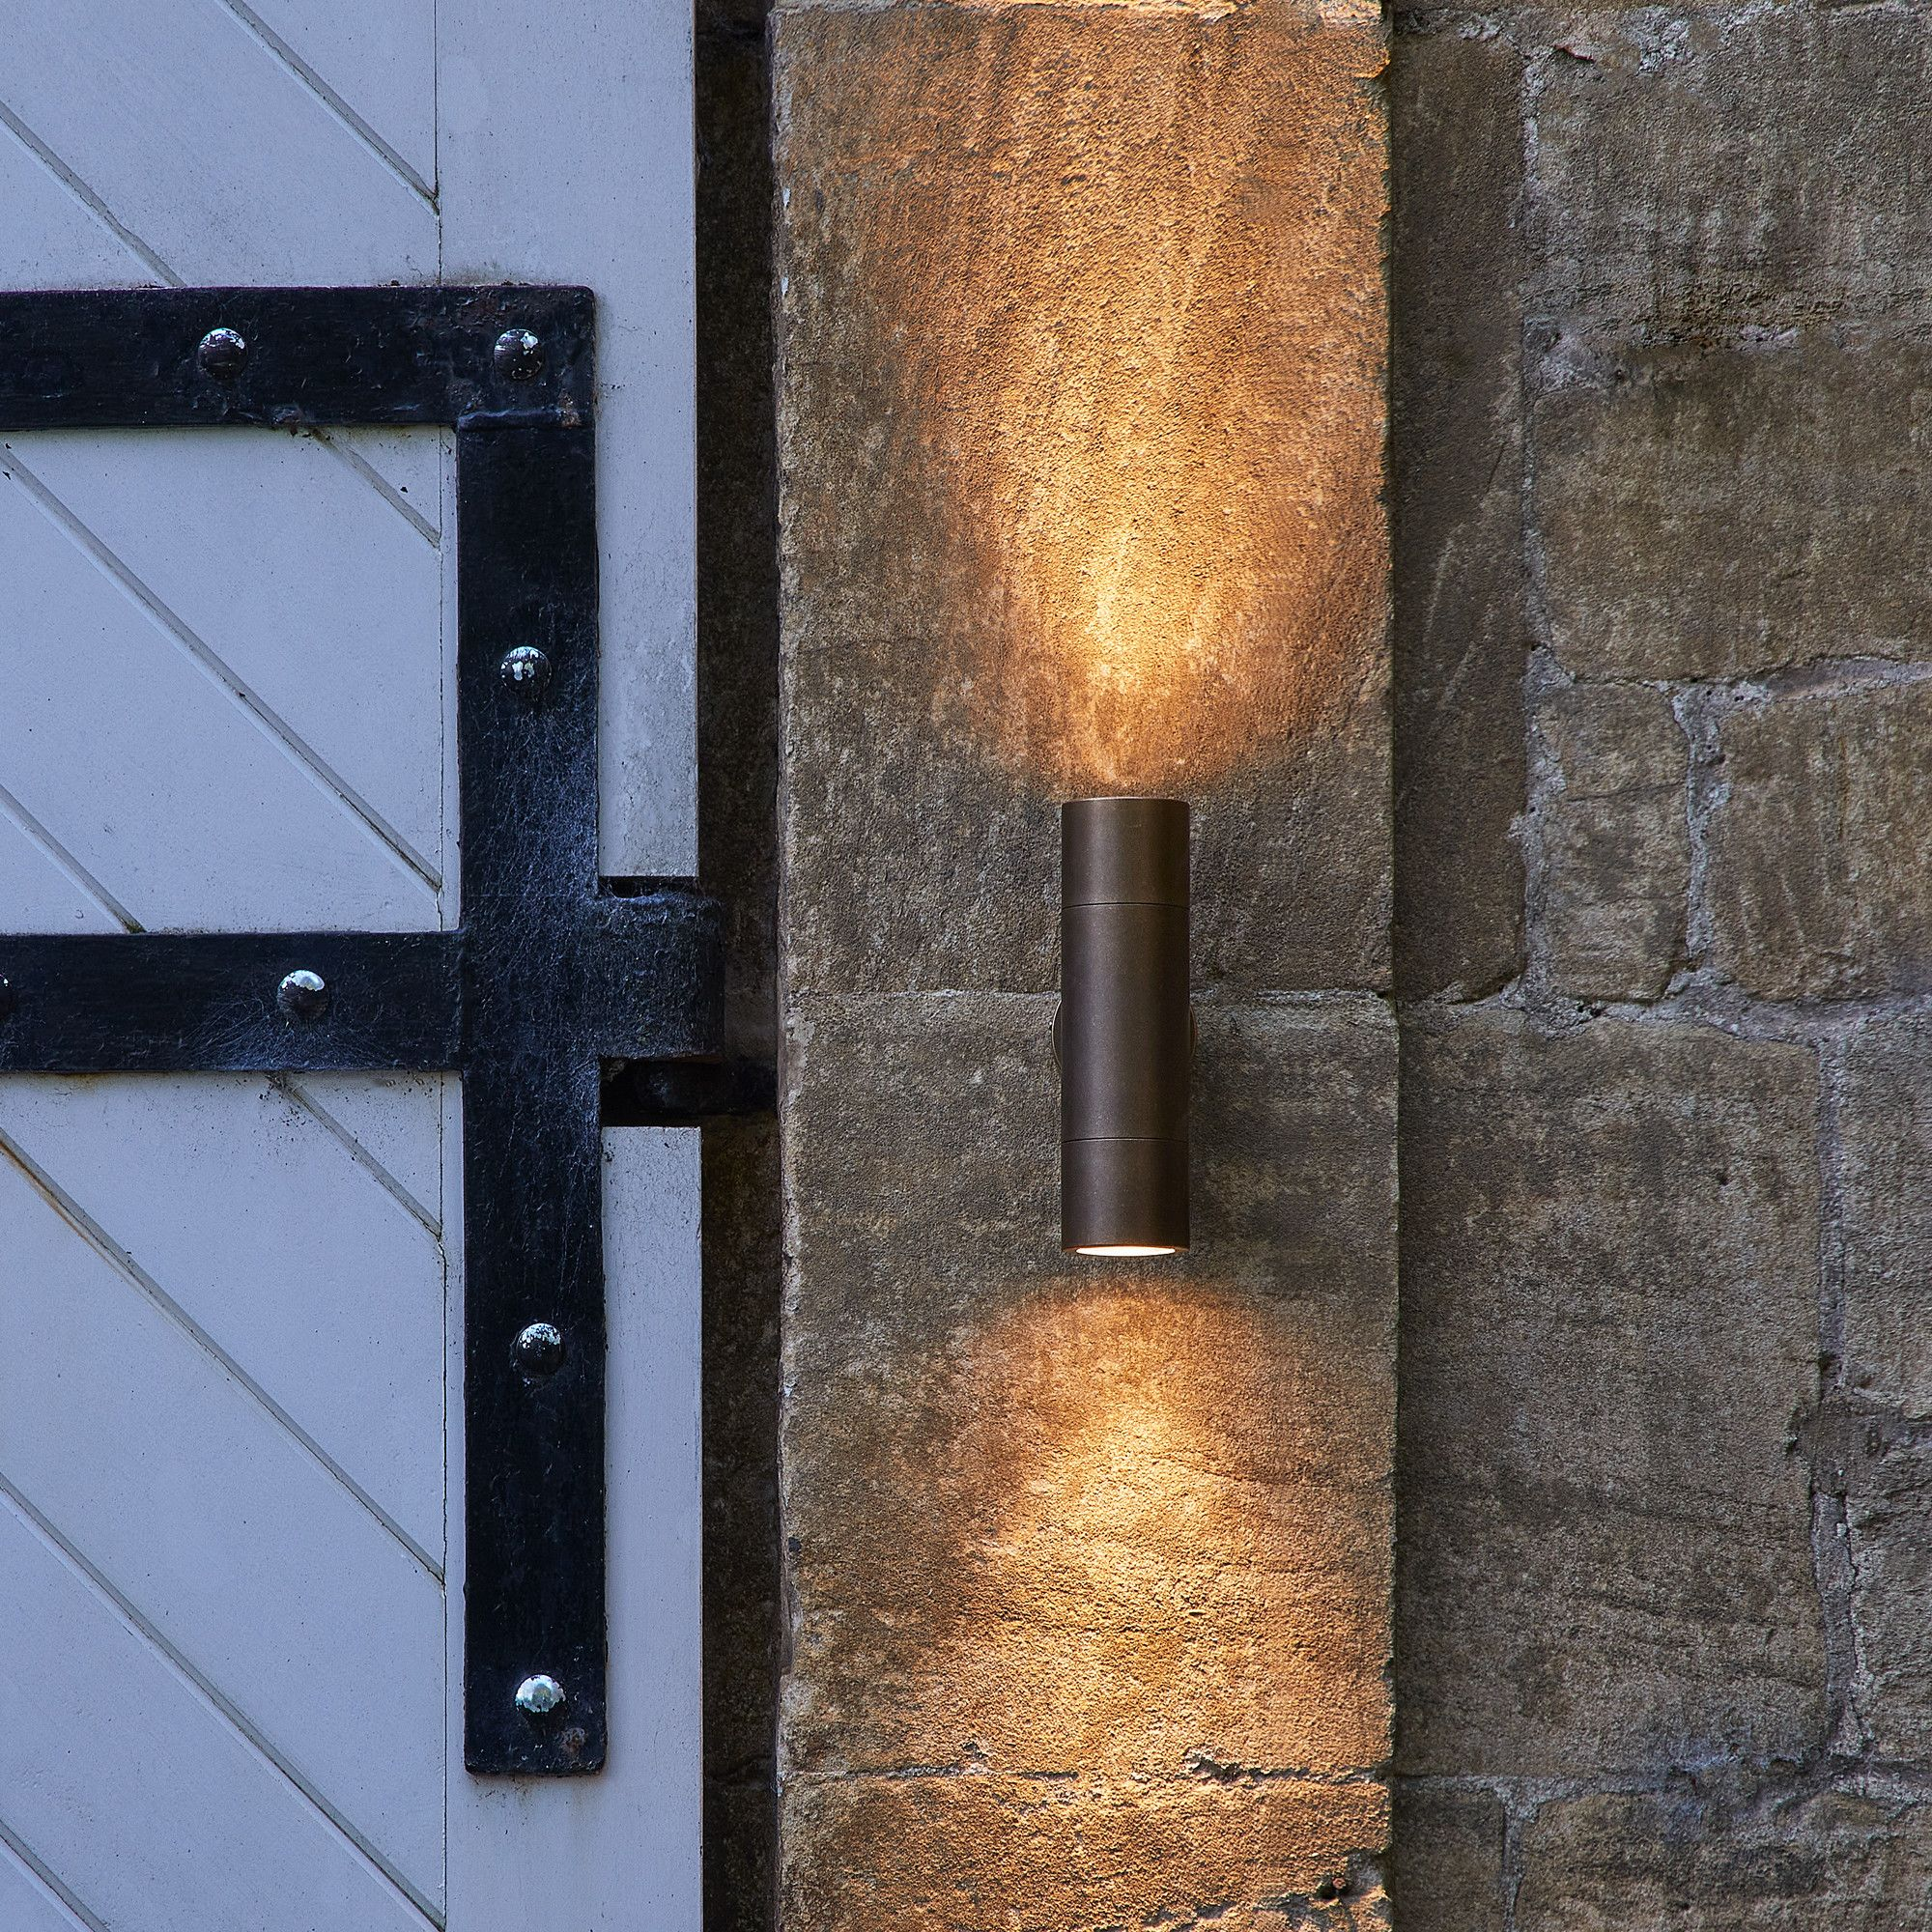 Clessidra Modern Up Down Contemporary Wall Spot Light For Indoor Or Outdoor Lighting Flos Shop Wall Lights Exterior Wall Light Modern Outdoor Wall Lighting